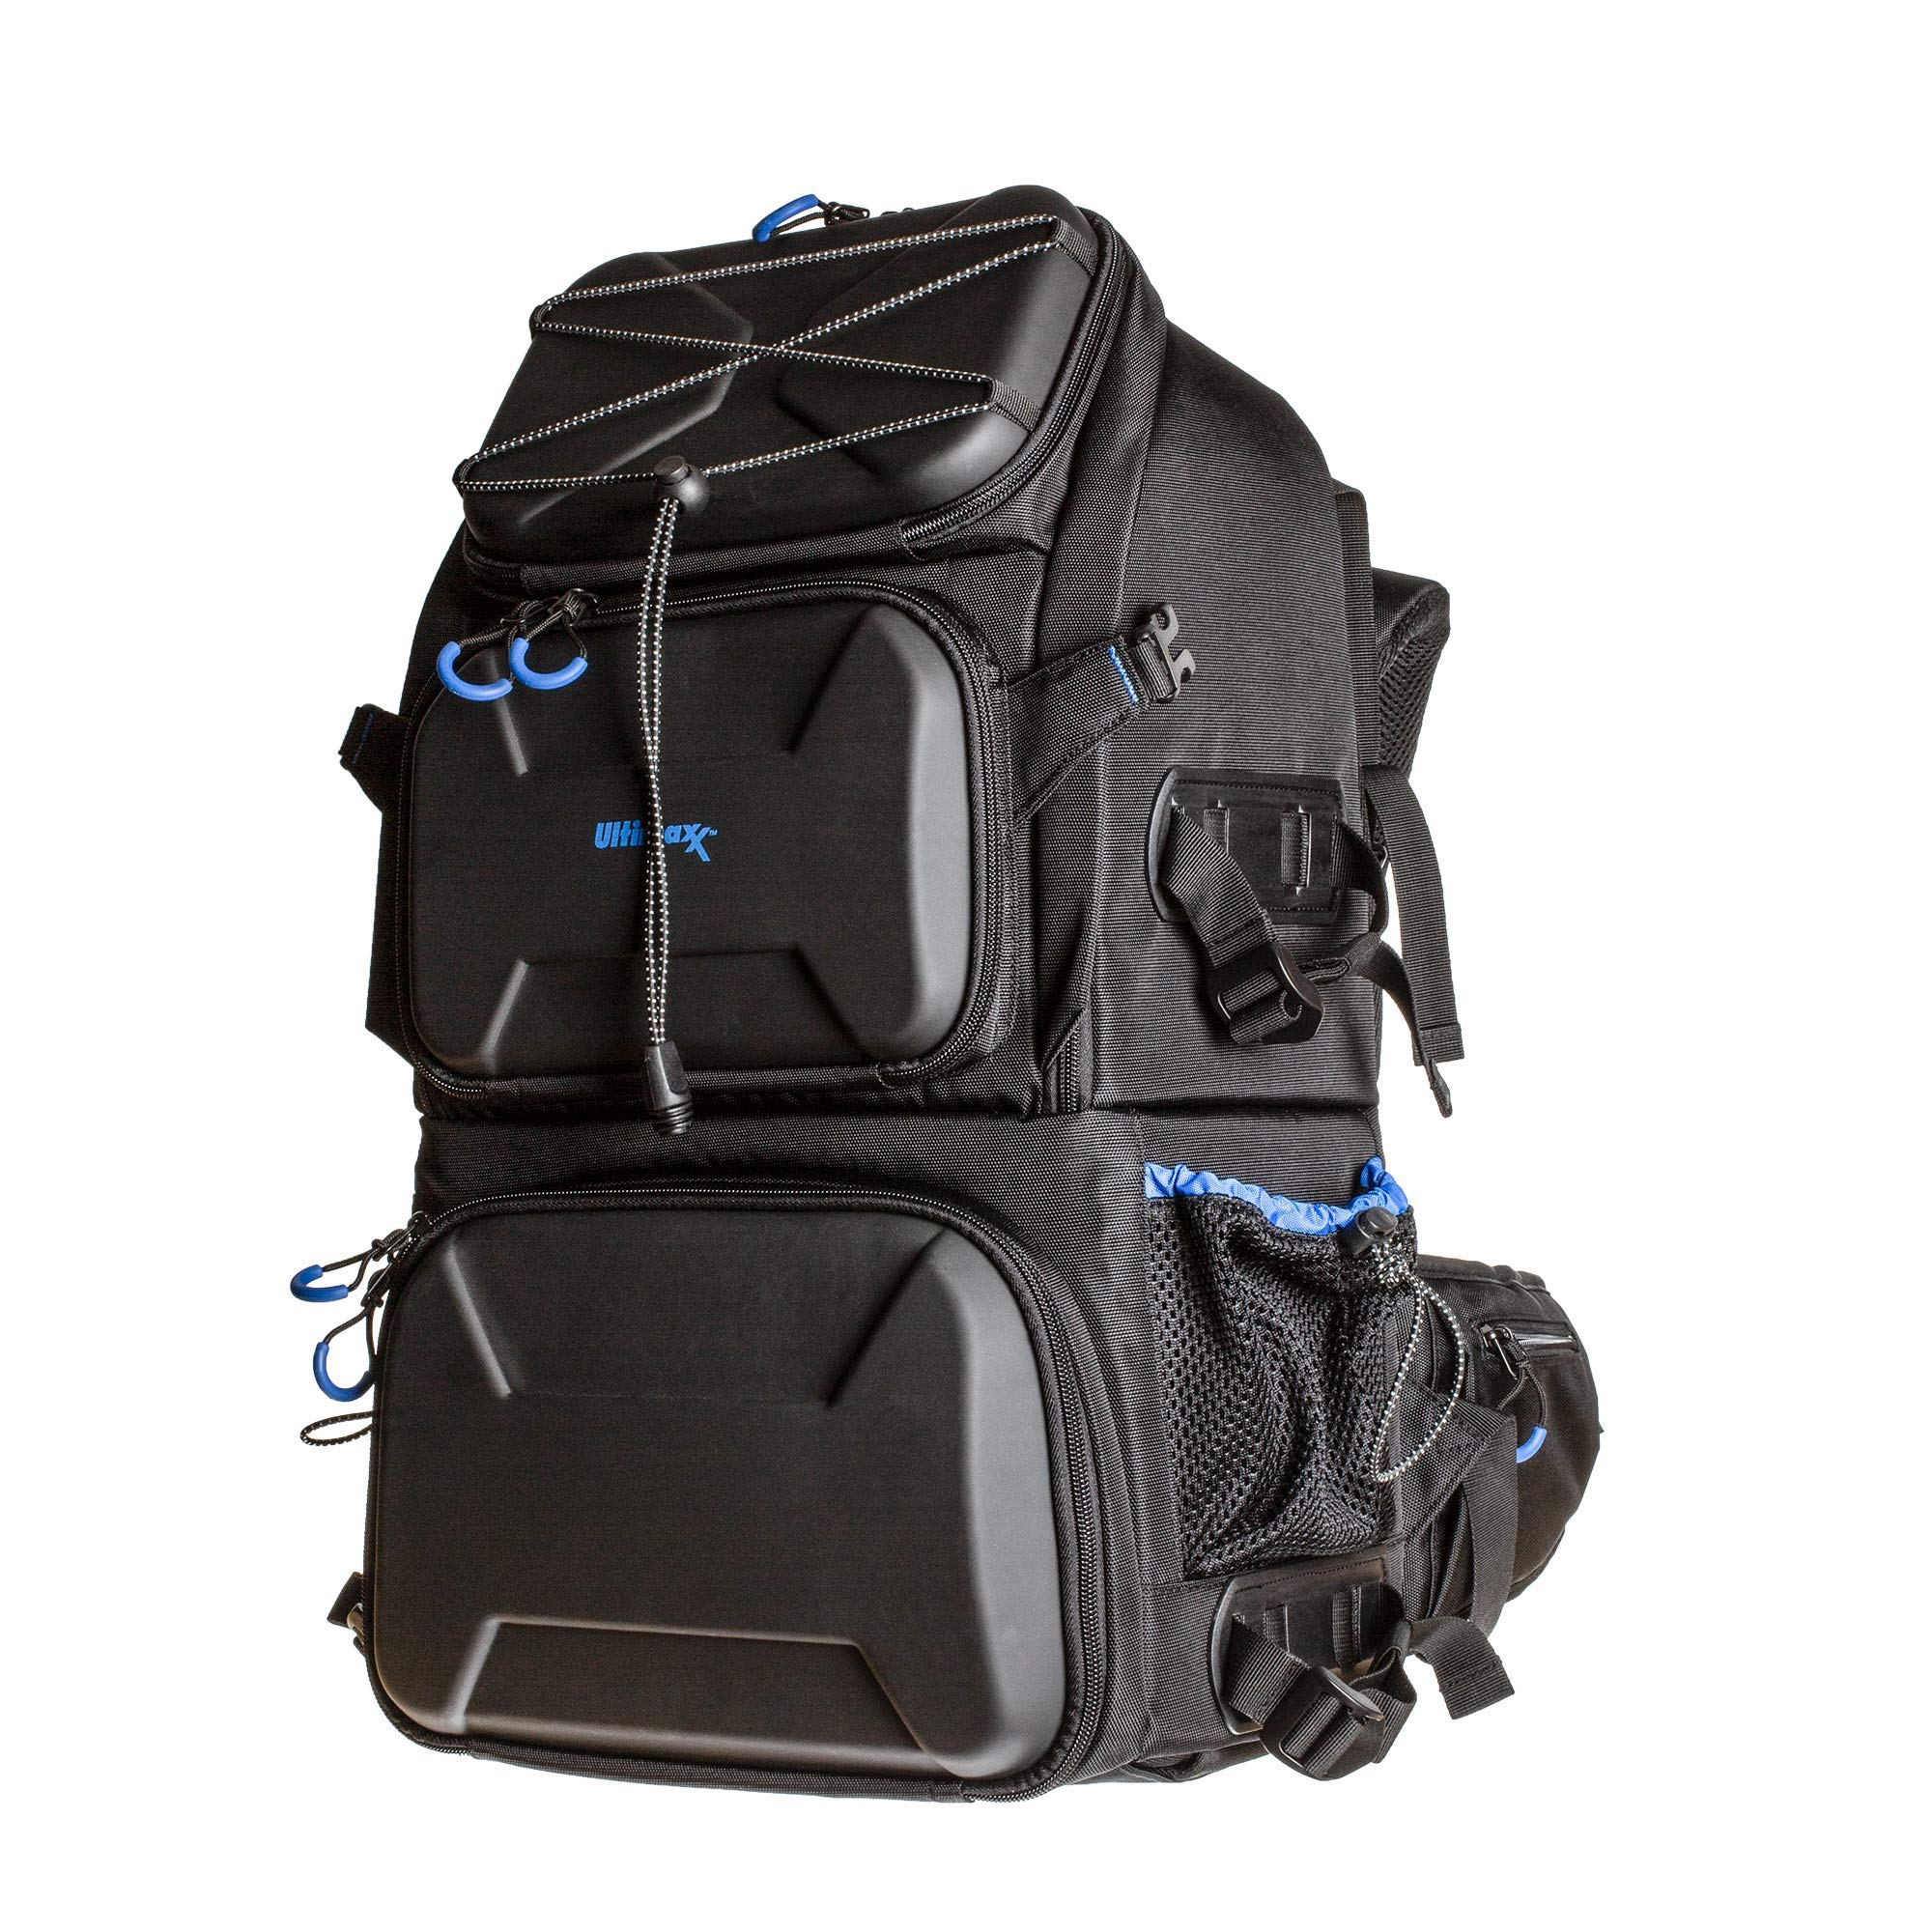 Ultimaxx Backpack Panasonic Travelling Compartment